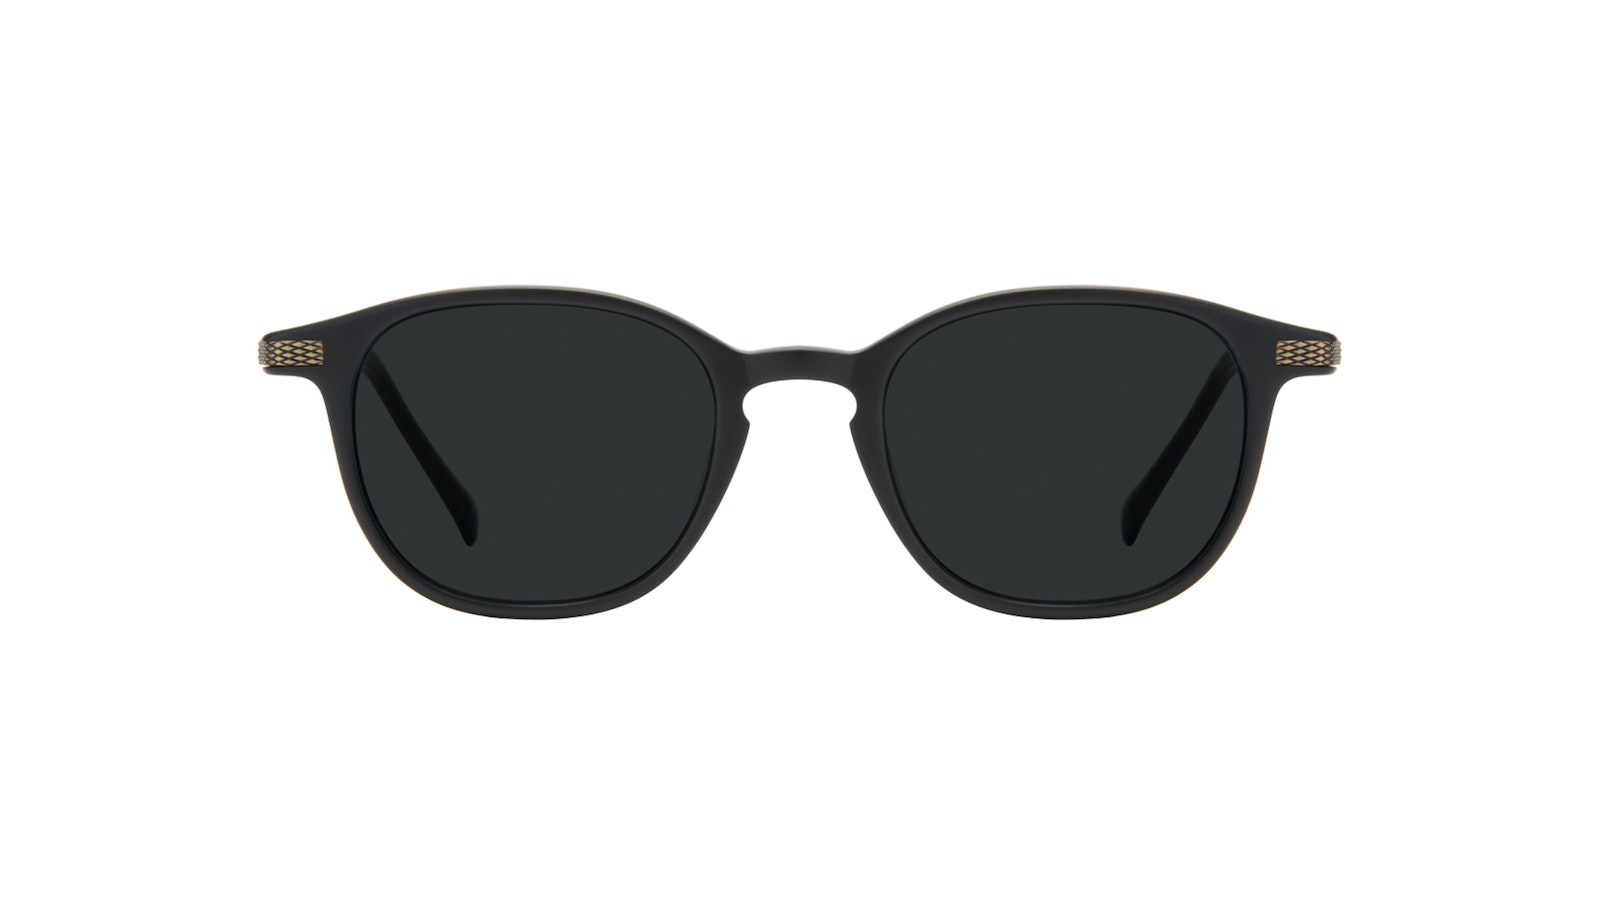 Affordable Fashion Glasses Round Sunglasses Men Tux Onyx Matte